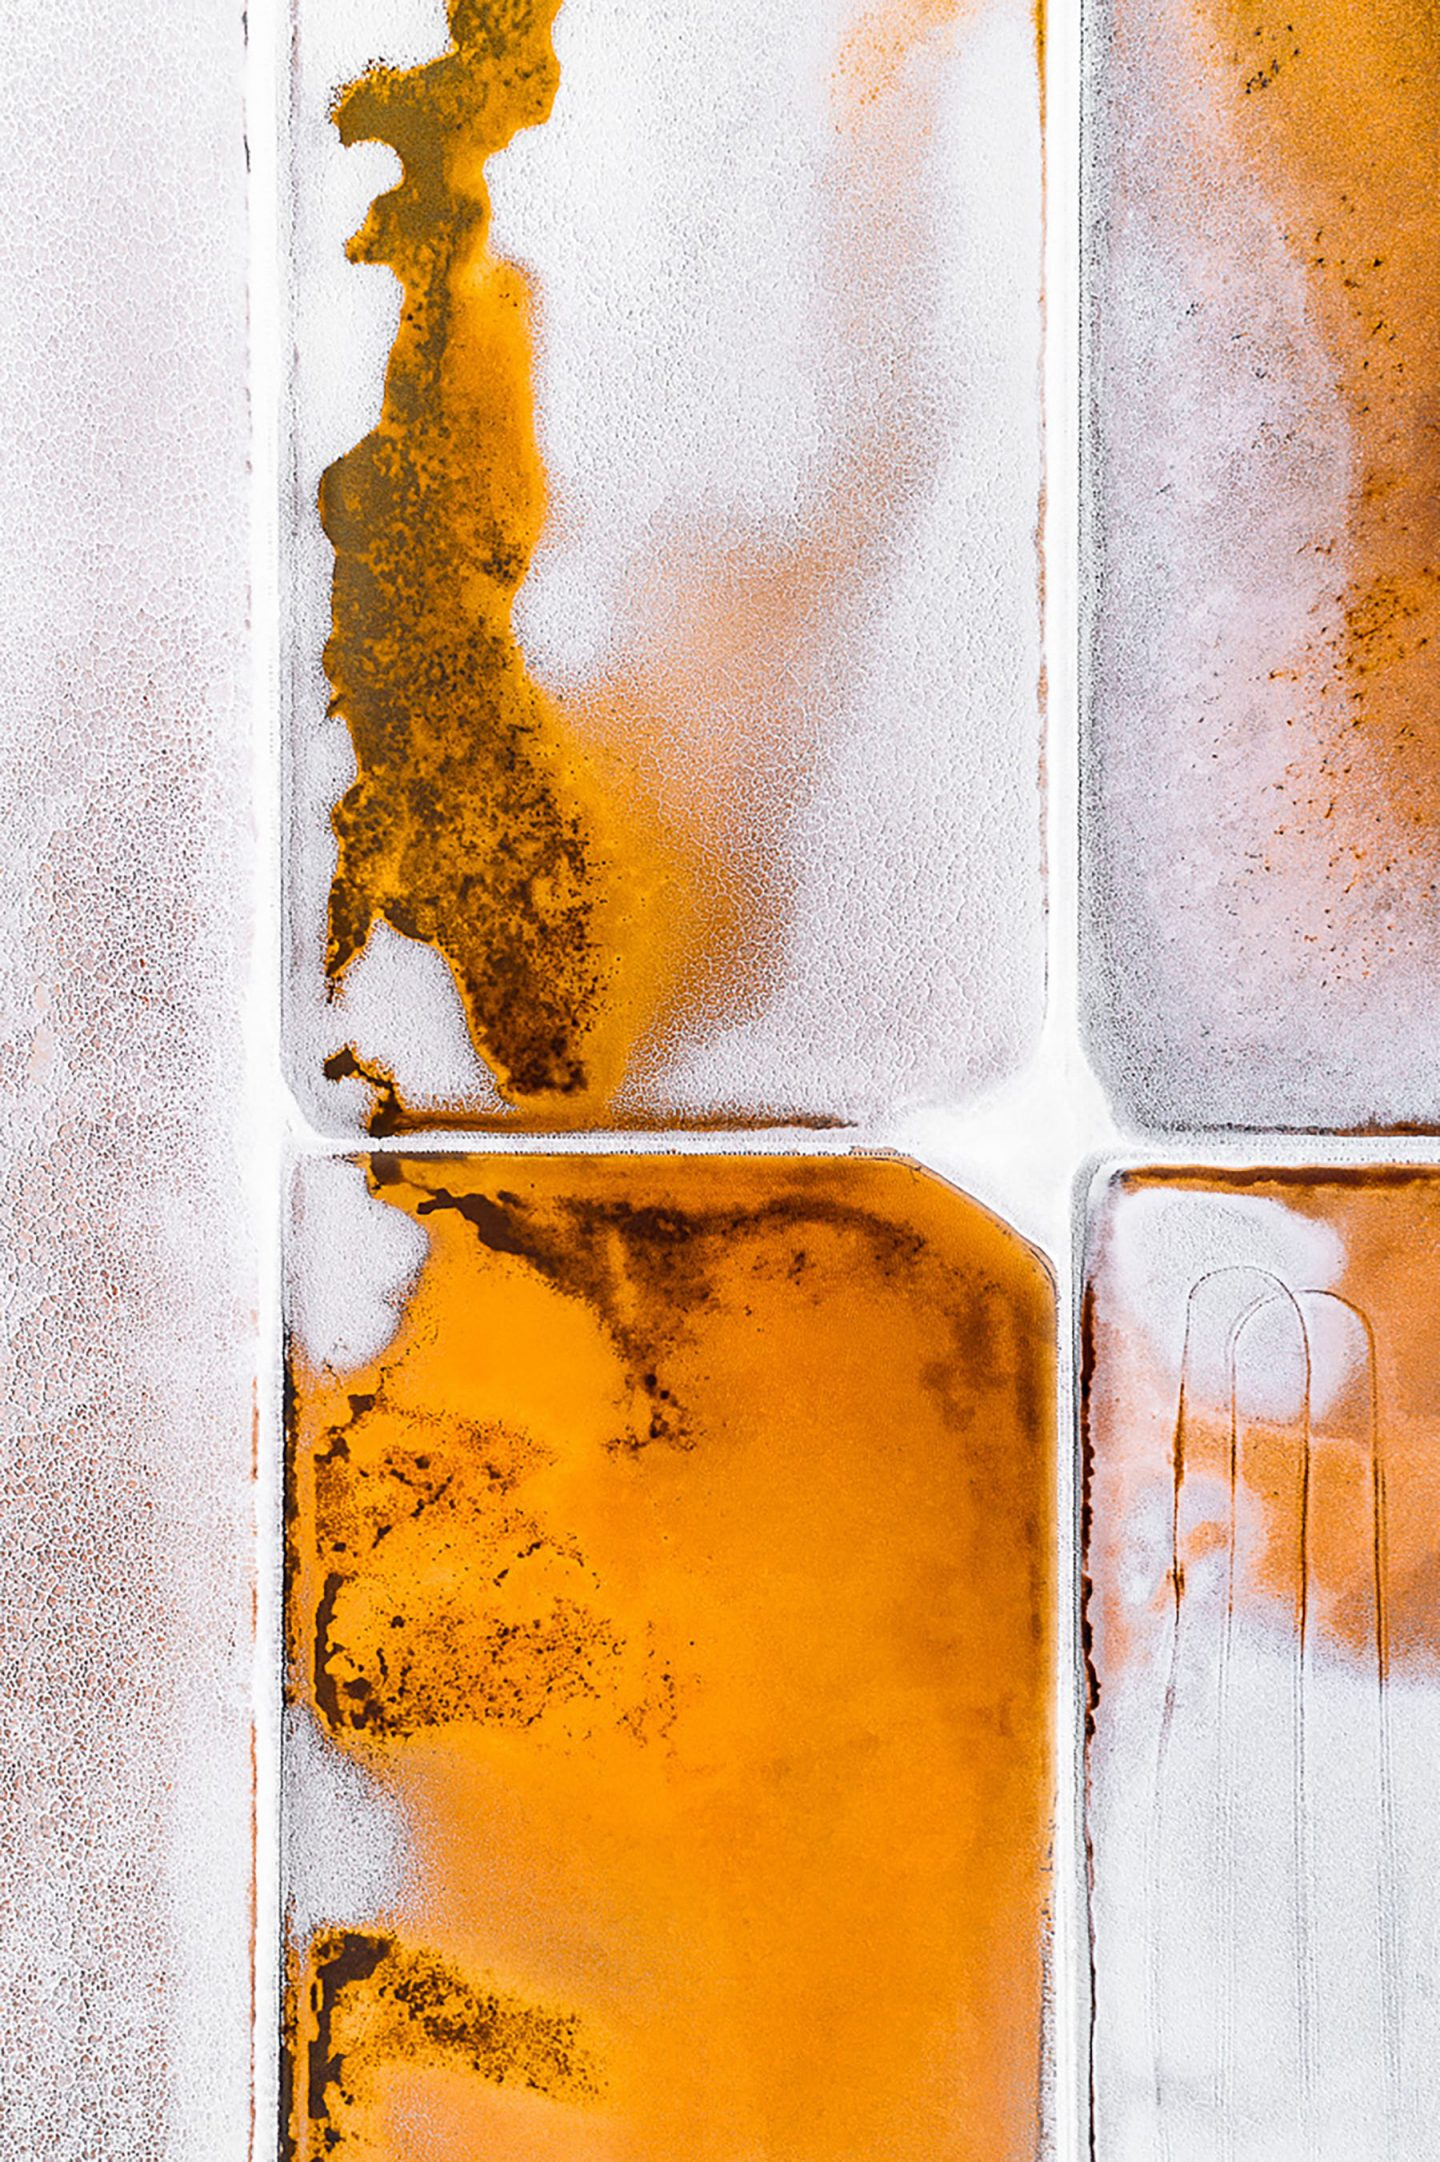 iGNANT-Photography-Tom-Hegen-The-Salt-Series-012